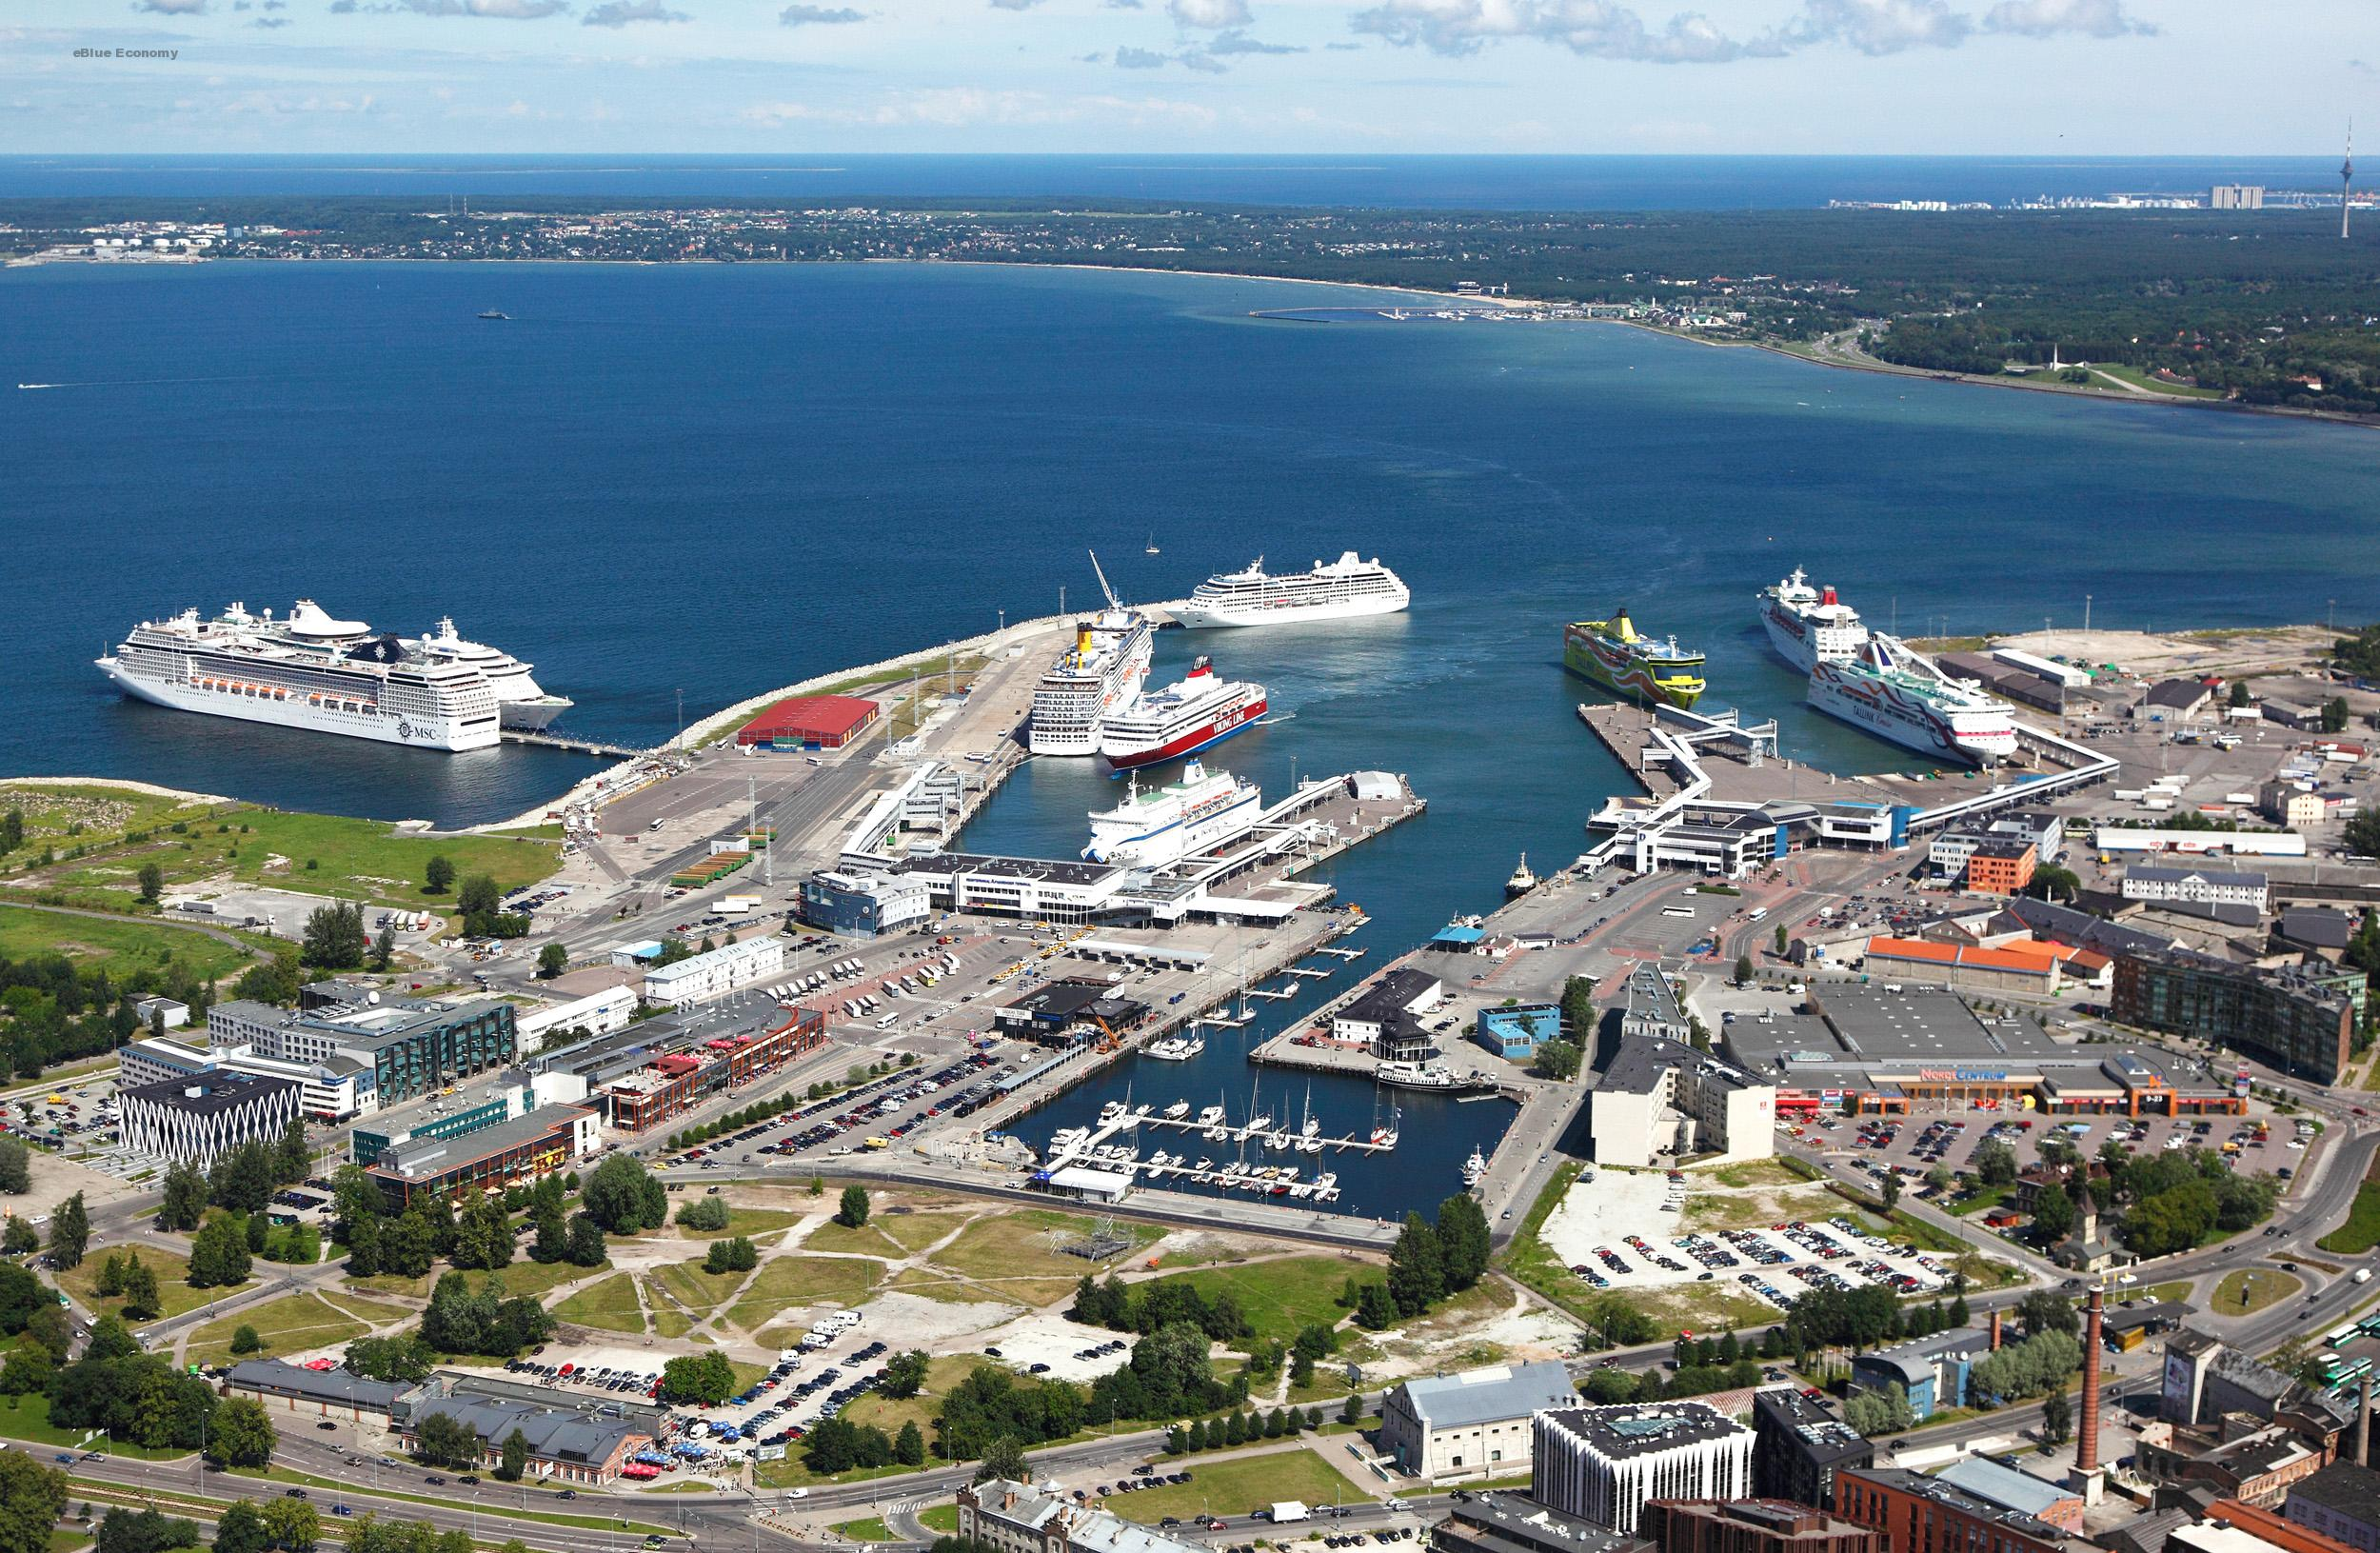 eBlue_economy_Port of Tallinn fortified environmental measures in operating areas